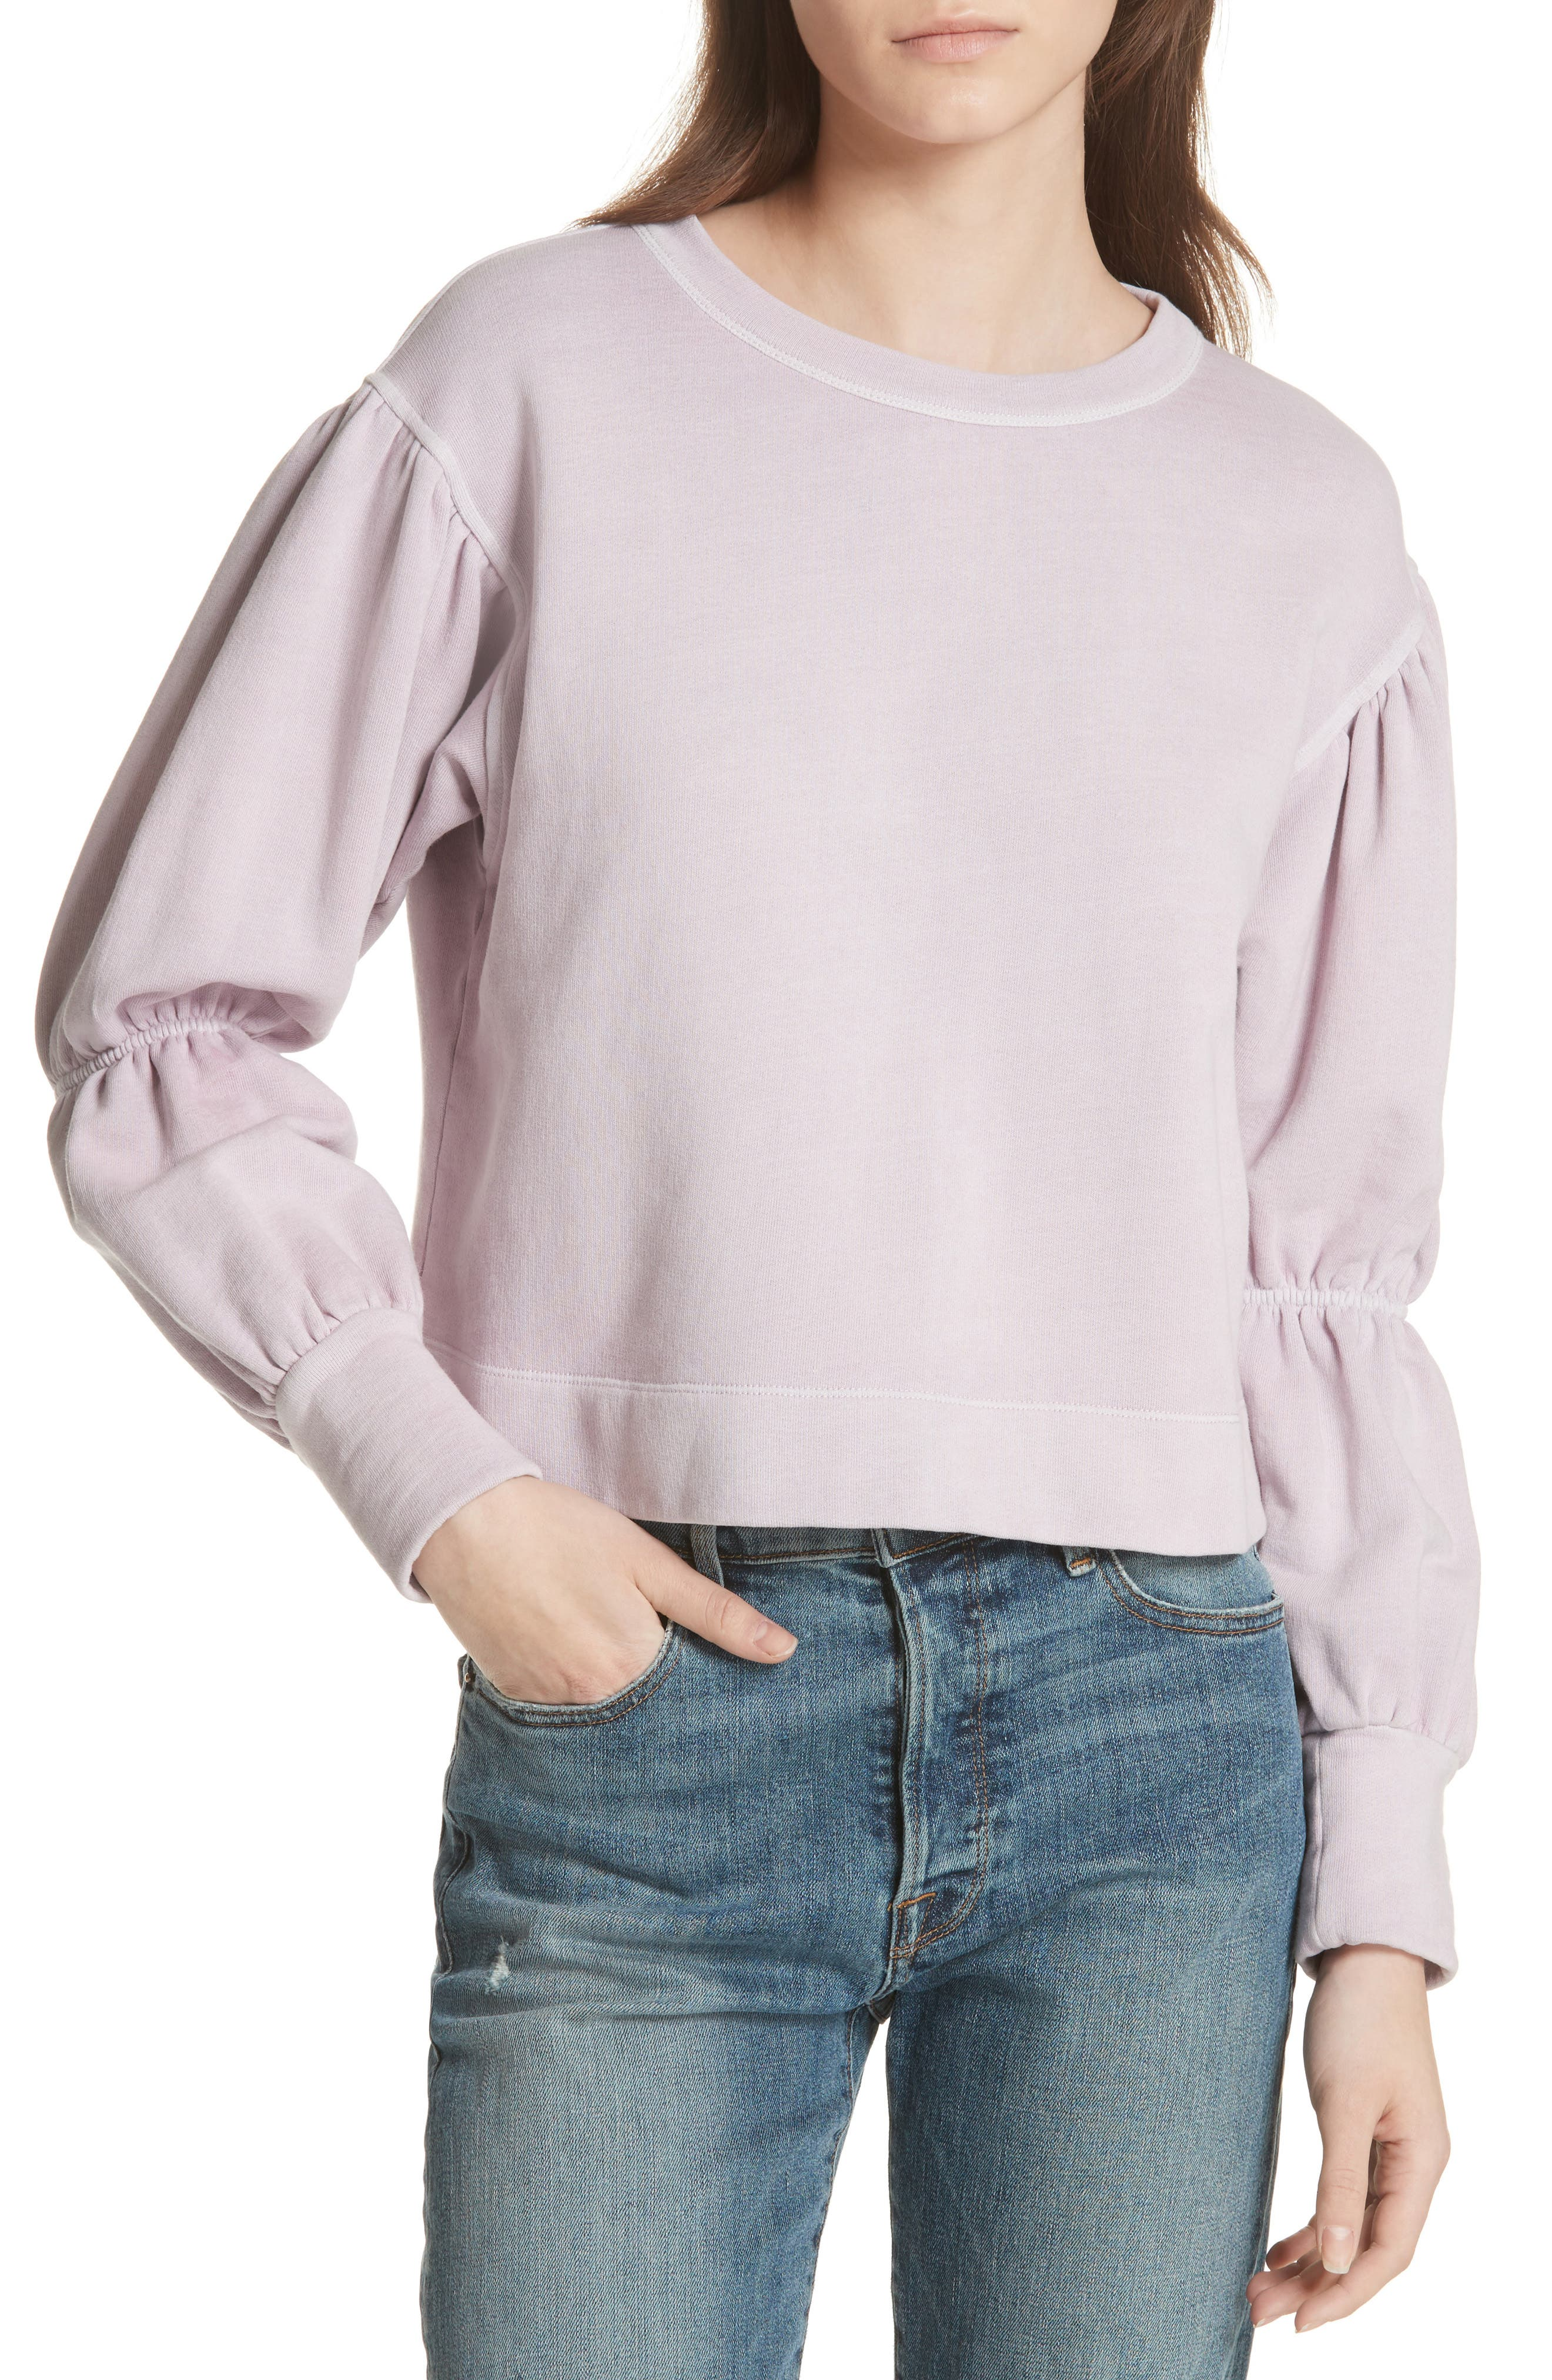 French Terry Pullover,                             Main thumbnail 1, color,                             Lilac Dust